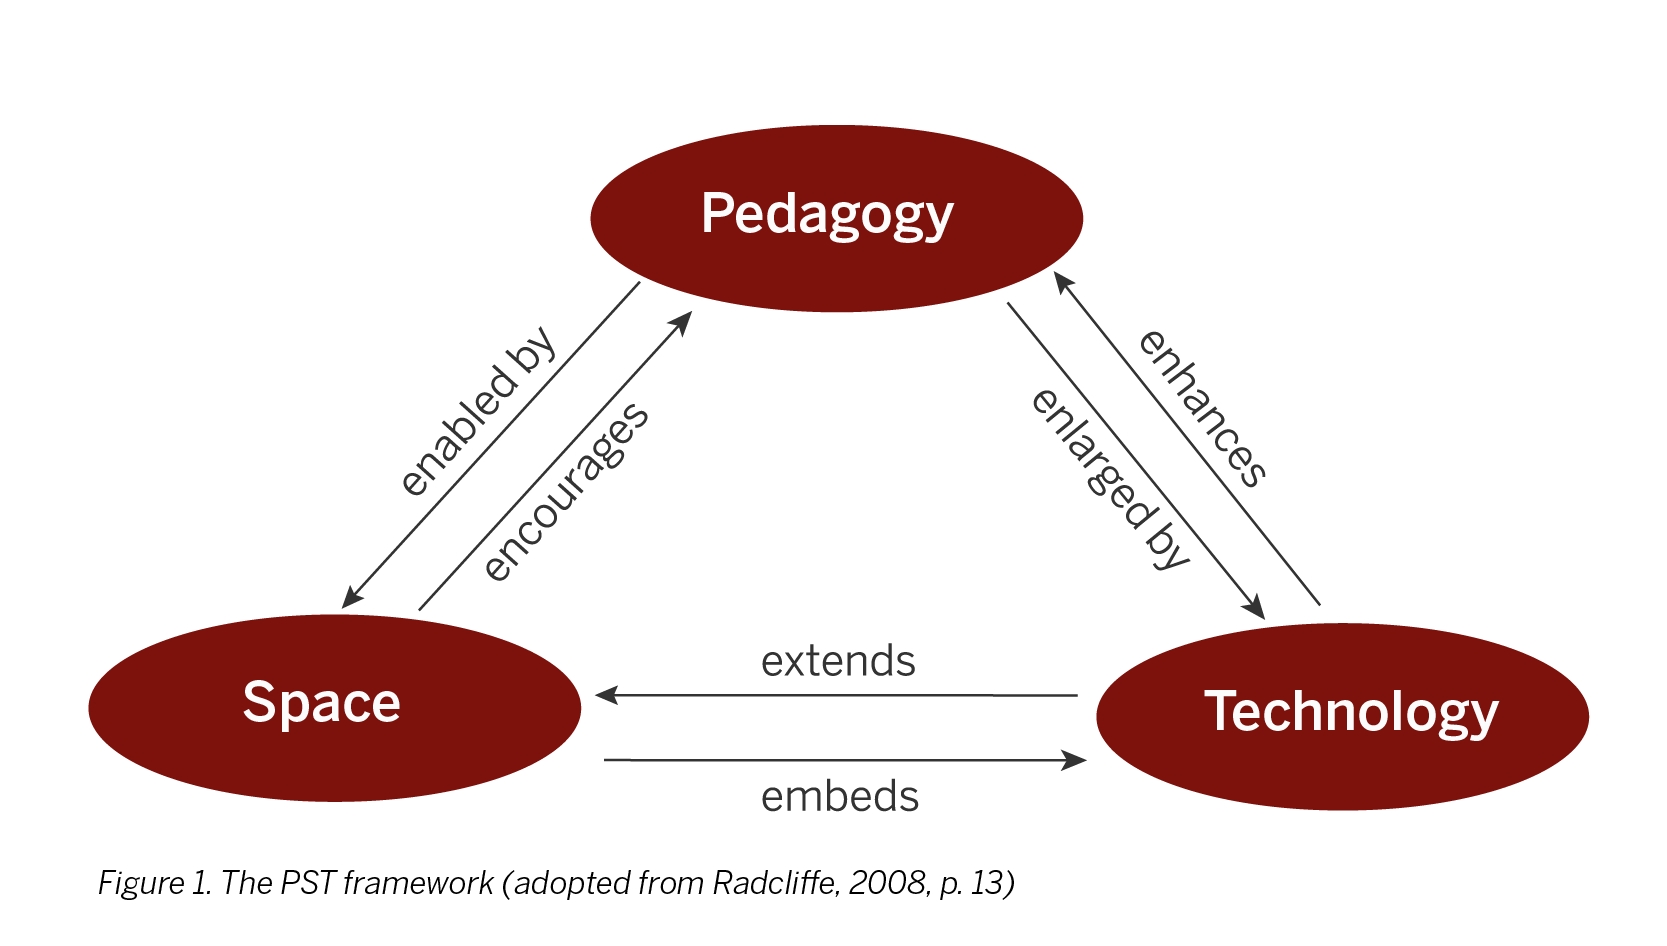 The PST framework (adopted from Radcliffe, 2008, p. 13)